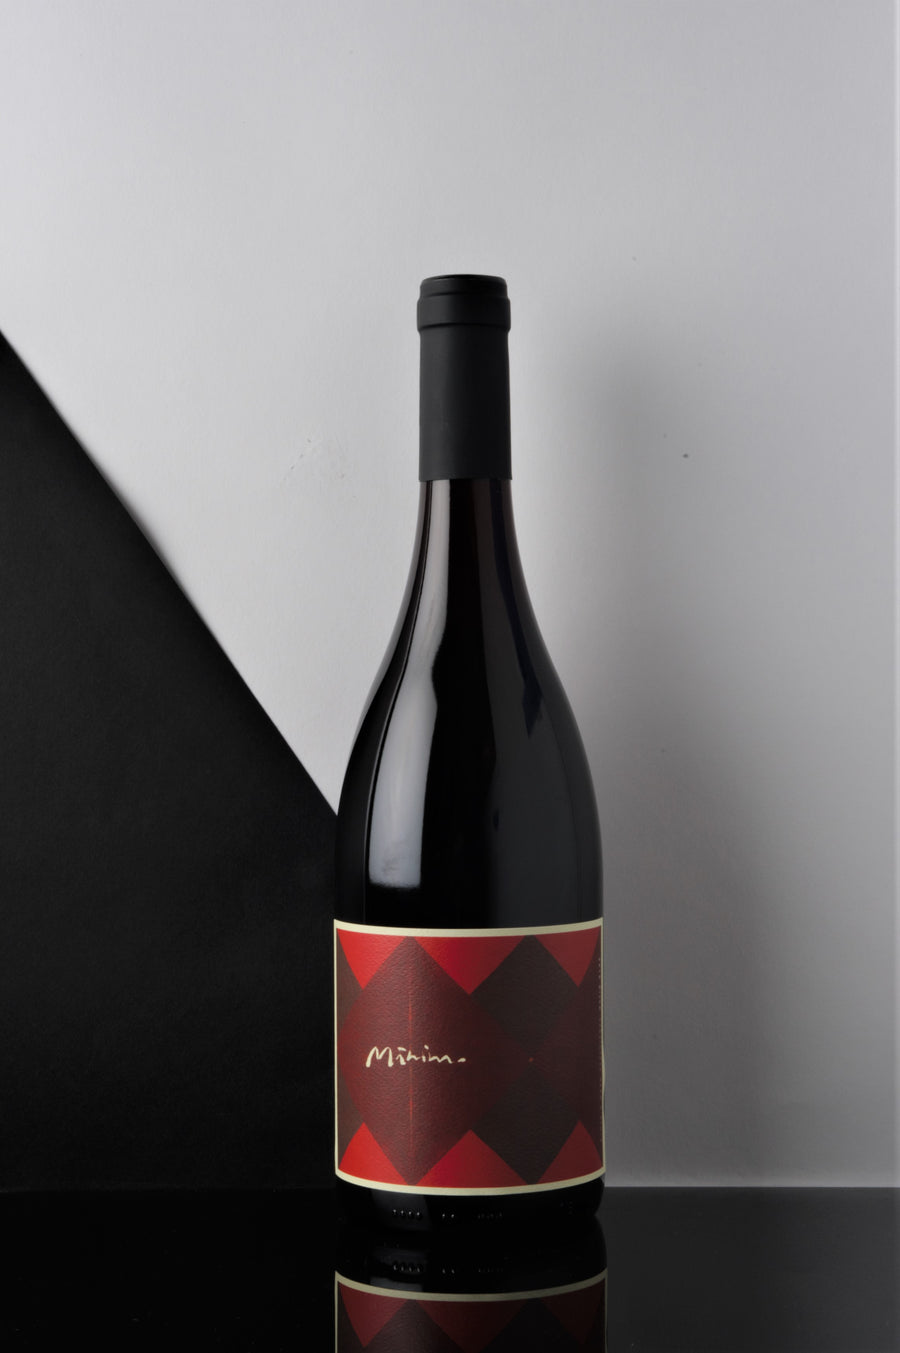 Minim Hitch Sangiovese Nero d'Avola